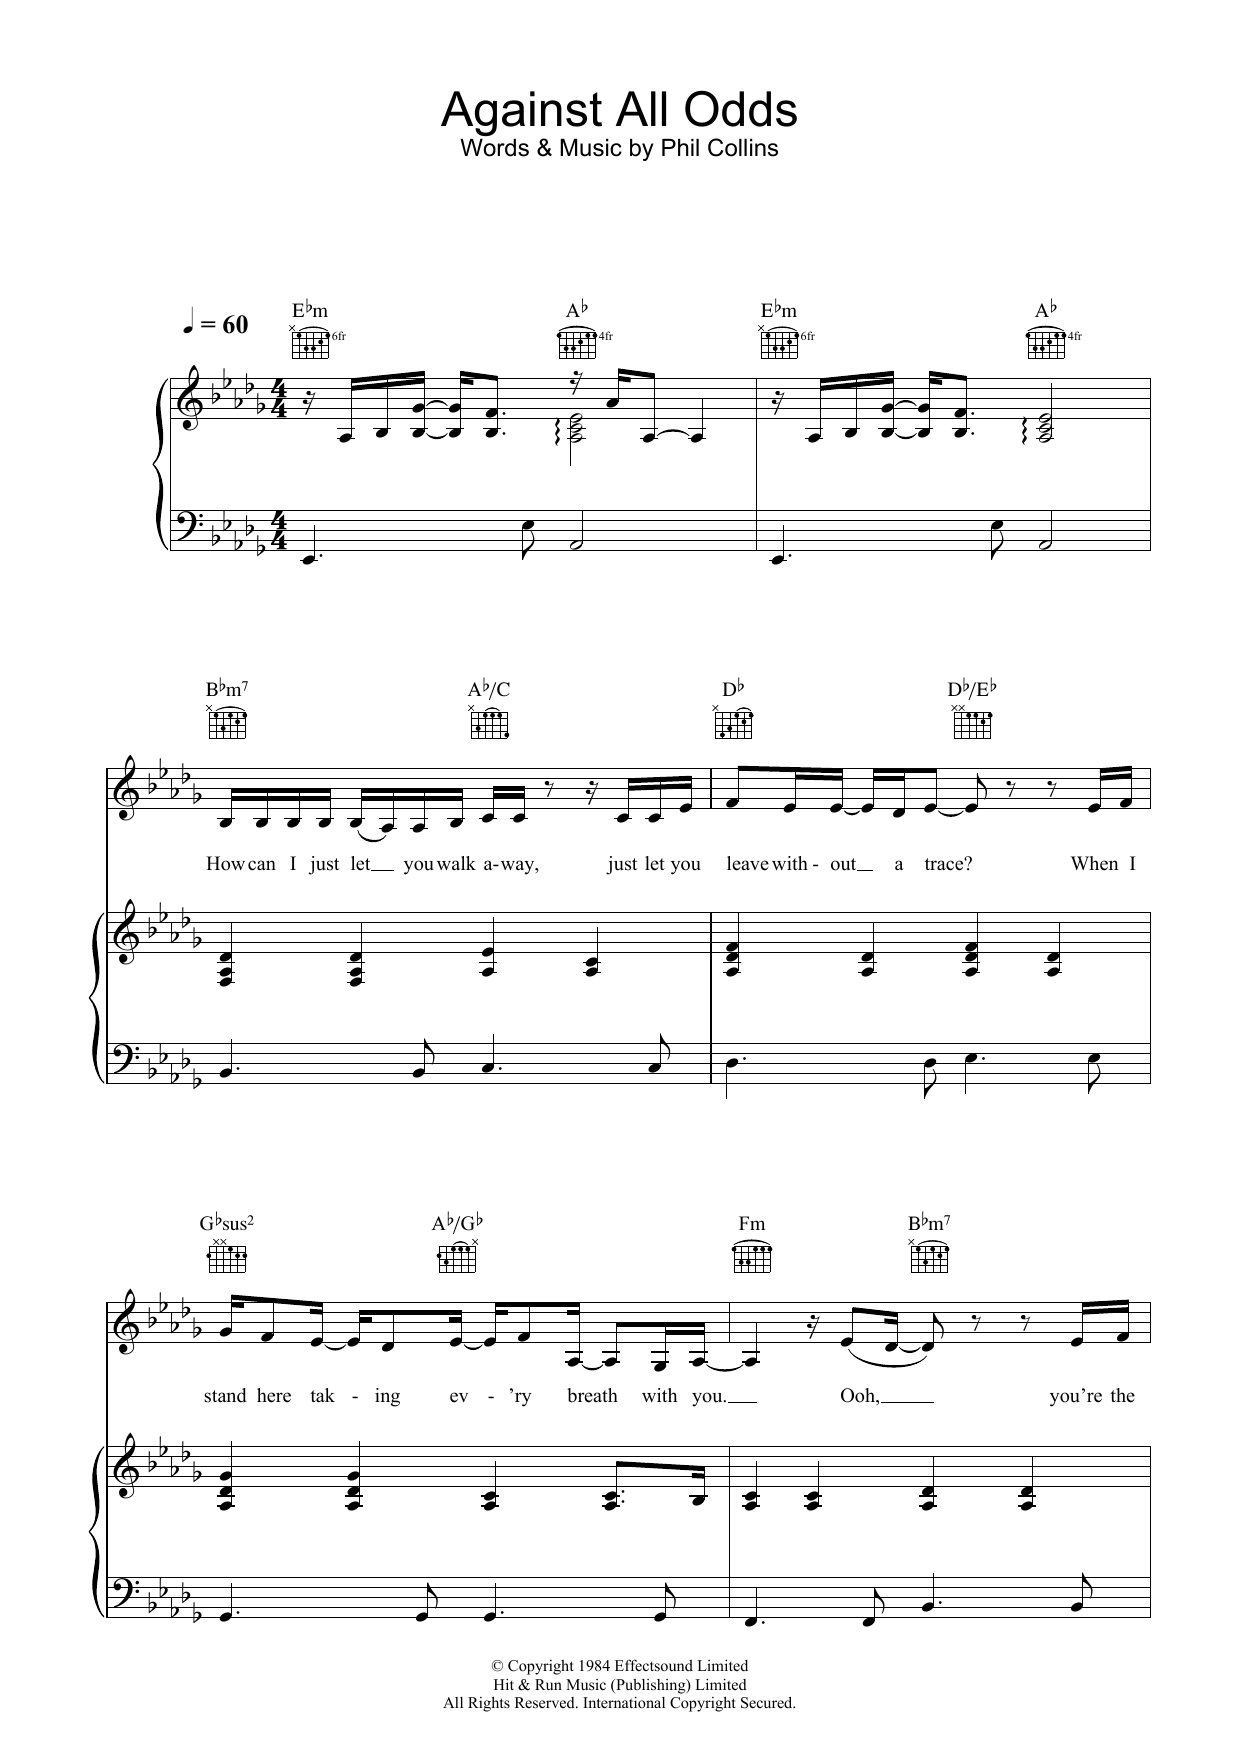 Against All Odds (Take A Look At Me Now) | Sheet Music Direct | 1240 x 1754 png 121kB